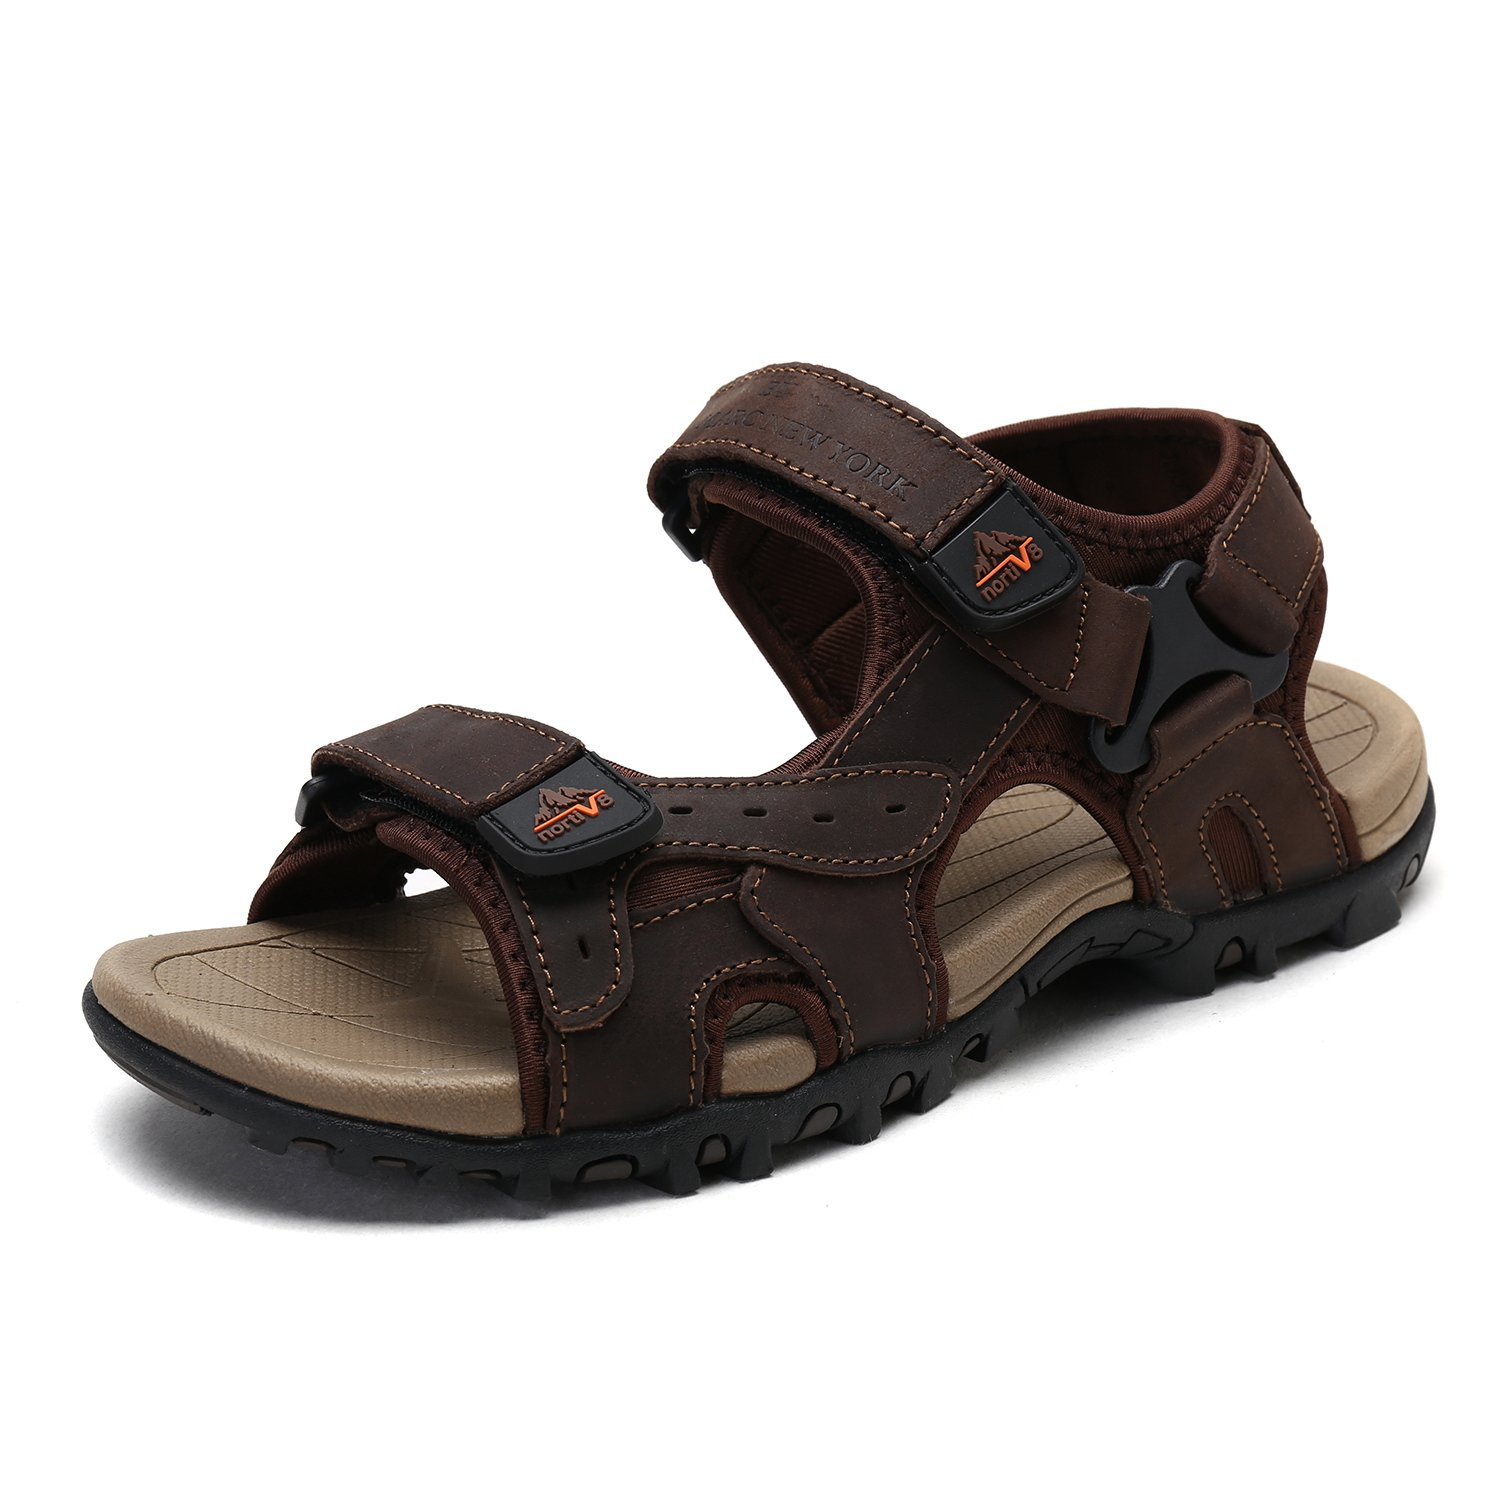 BRUNO MARC NEW YORK Bruno Marc Men's Maui-3 Brown Outdoor Fisherman Sandals Size 10 M US by BRUNO MARC NEW YORK